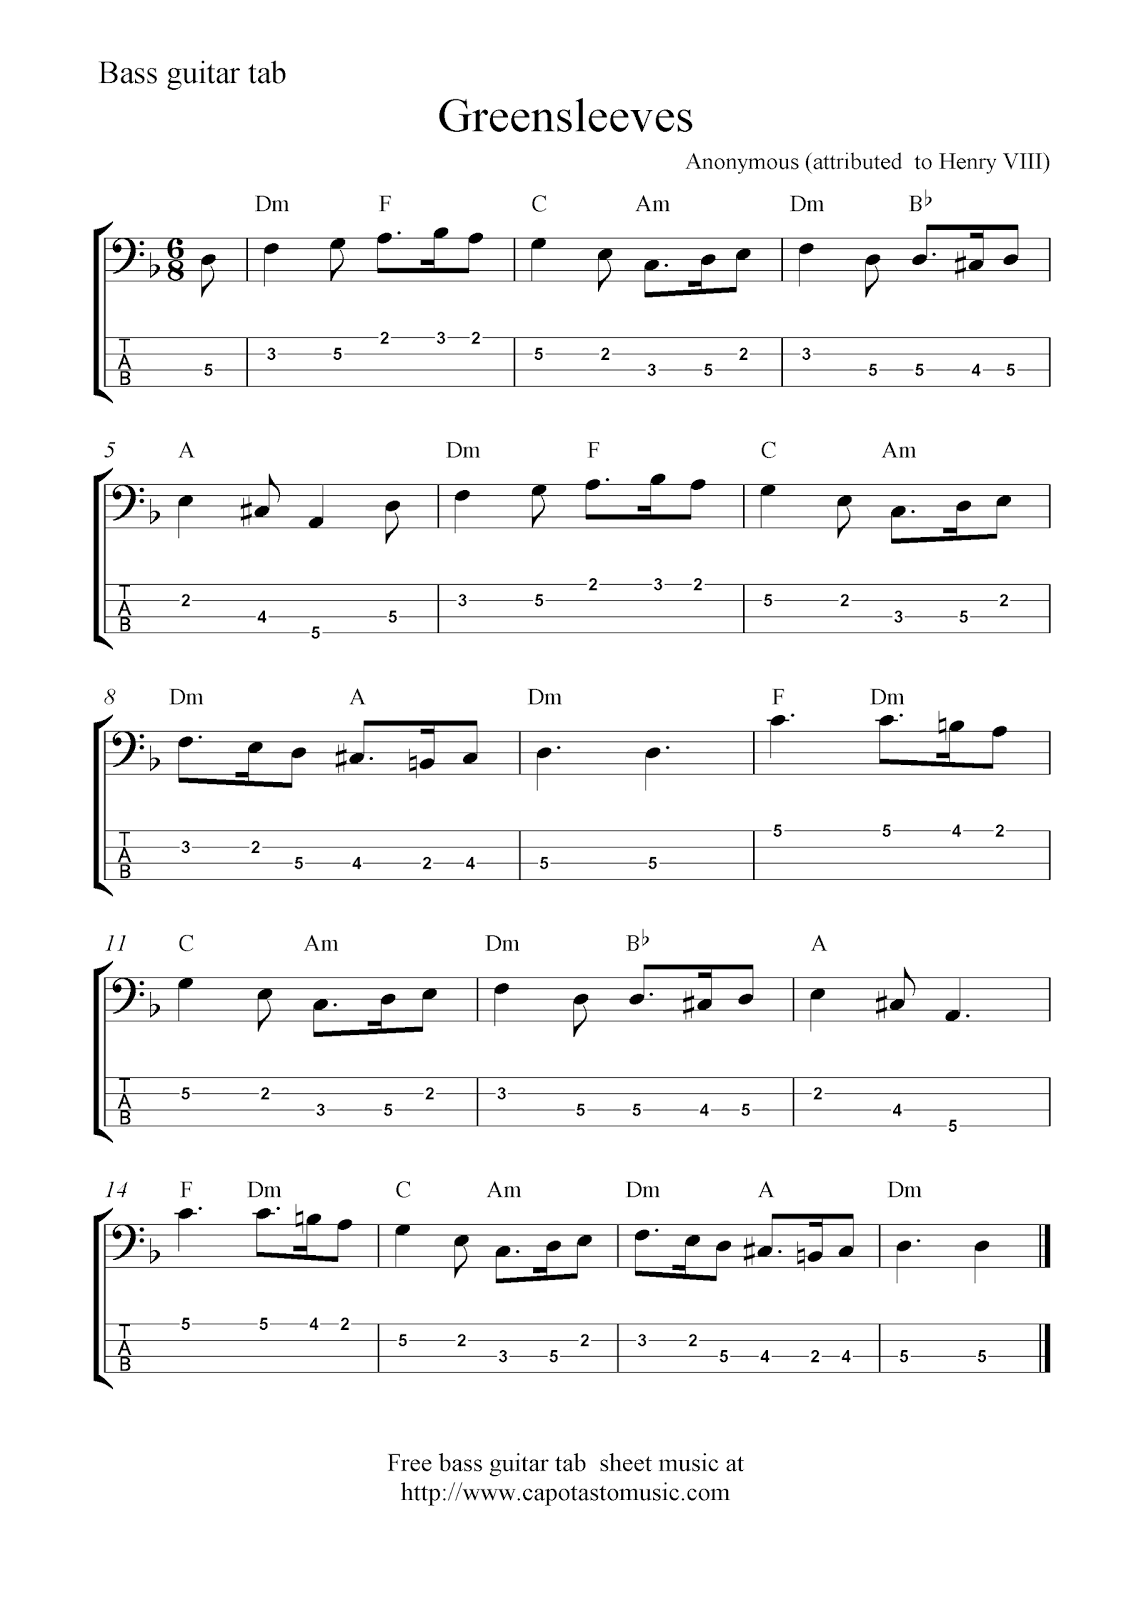 free bass sheet music - Music Search Engine at Search.com